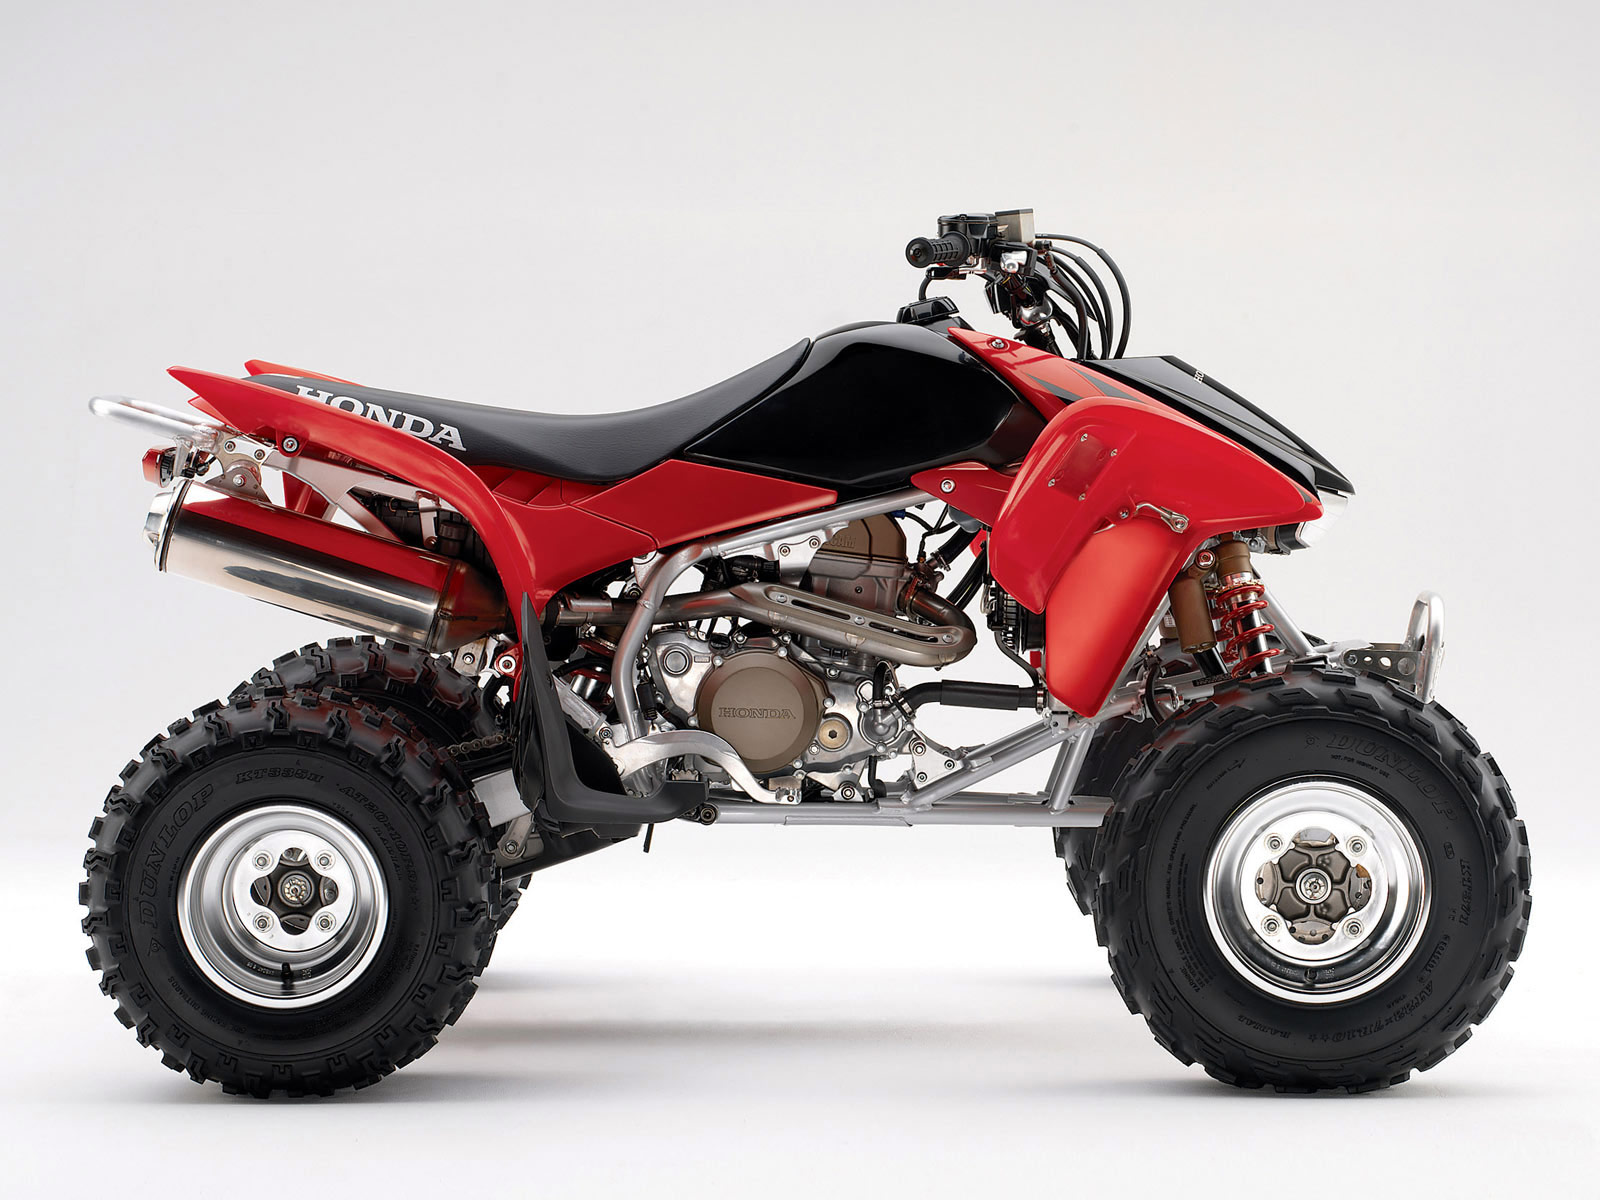 2006 Honda Trx 450 R Atv Wallpaper